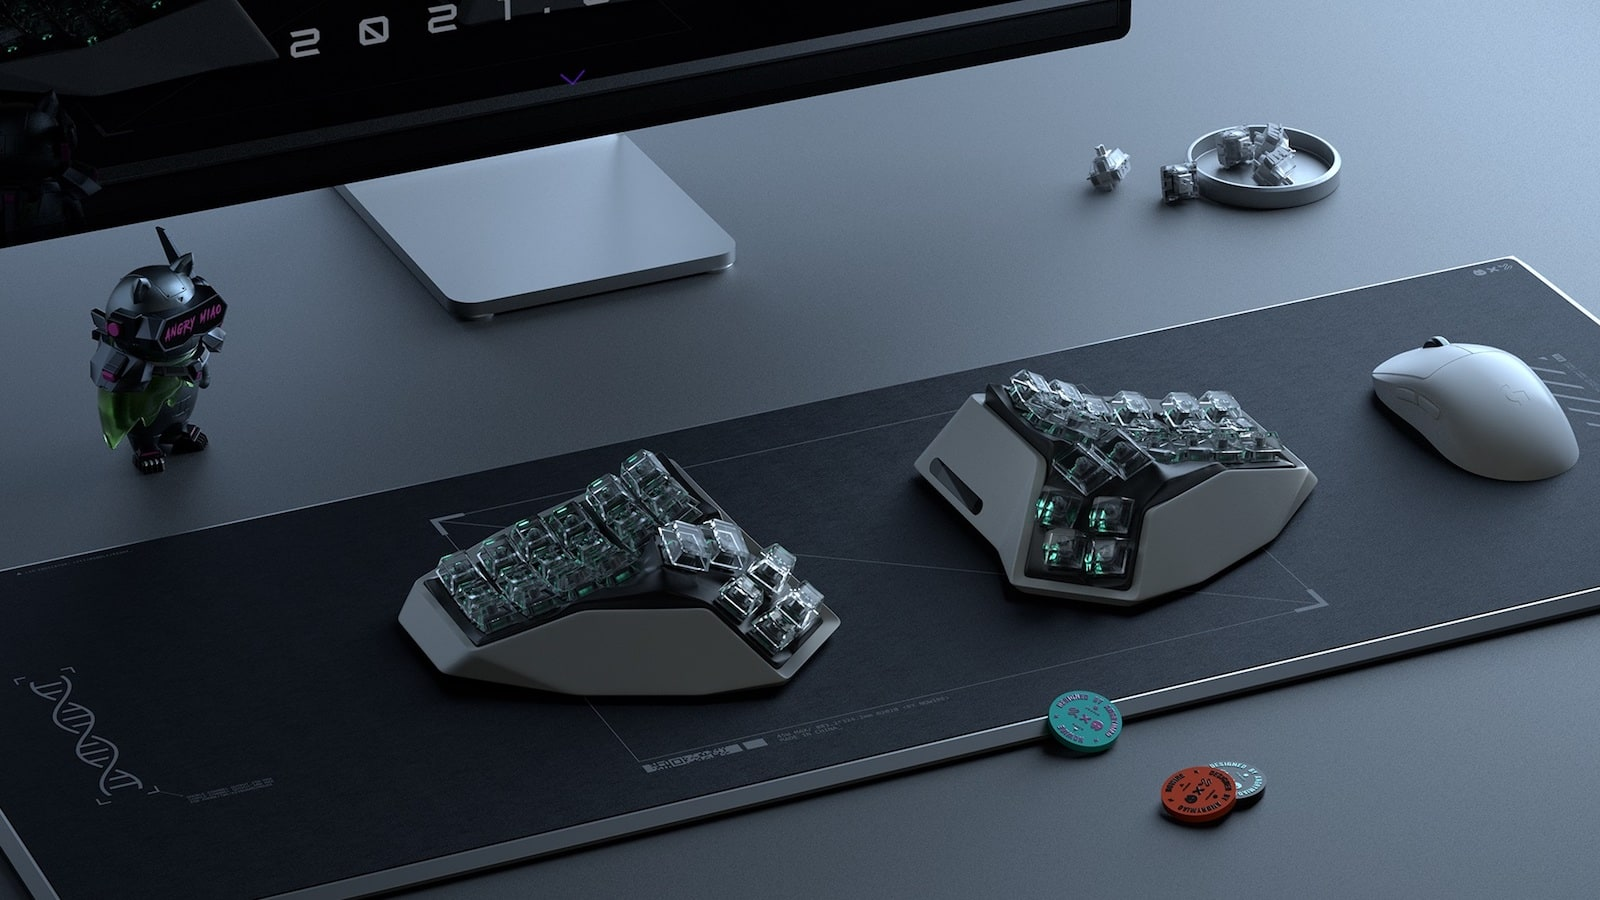 Angry Miao AM HATSU 3D split keyboard avoids flattening your wrist for ergonomic use